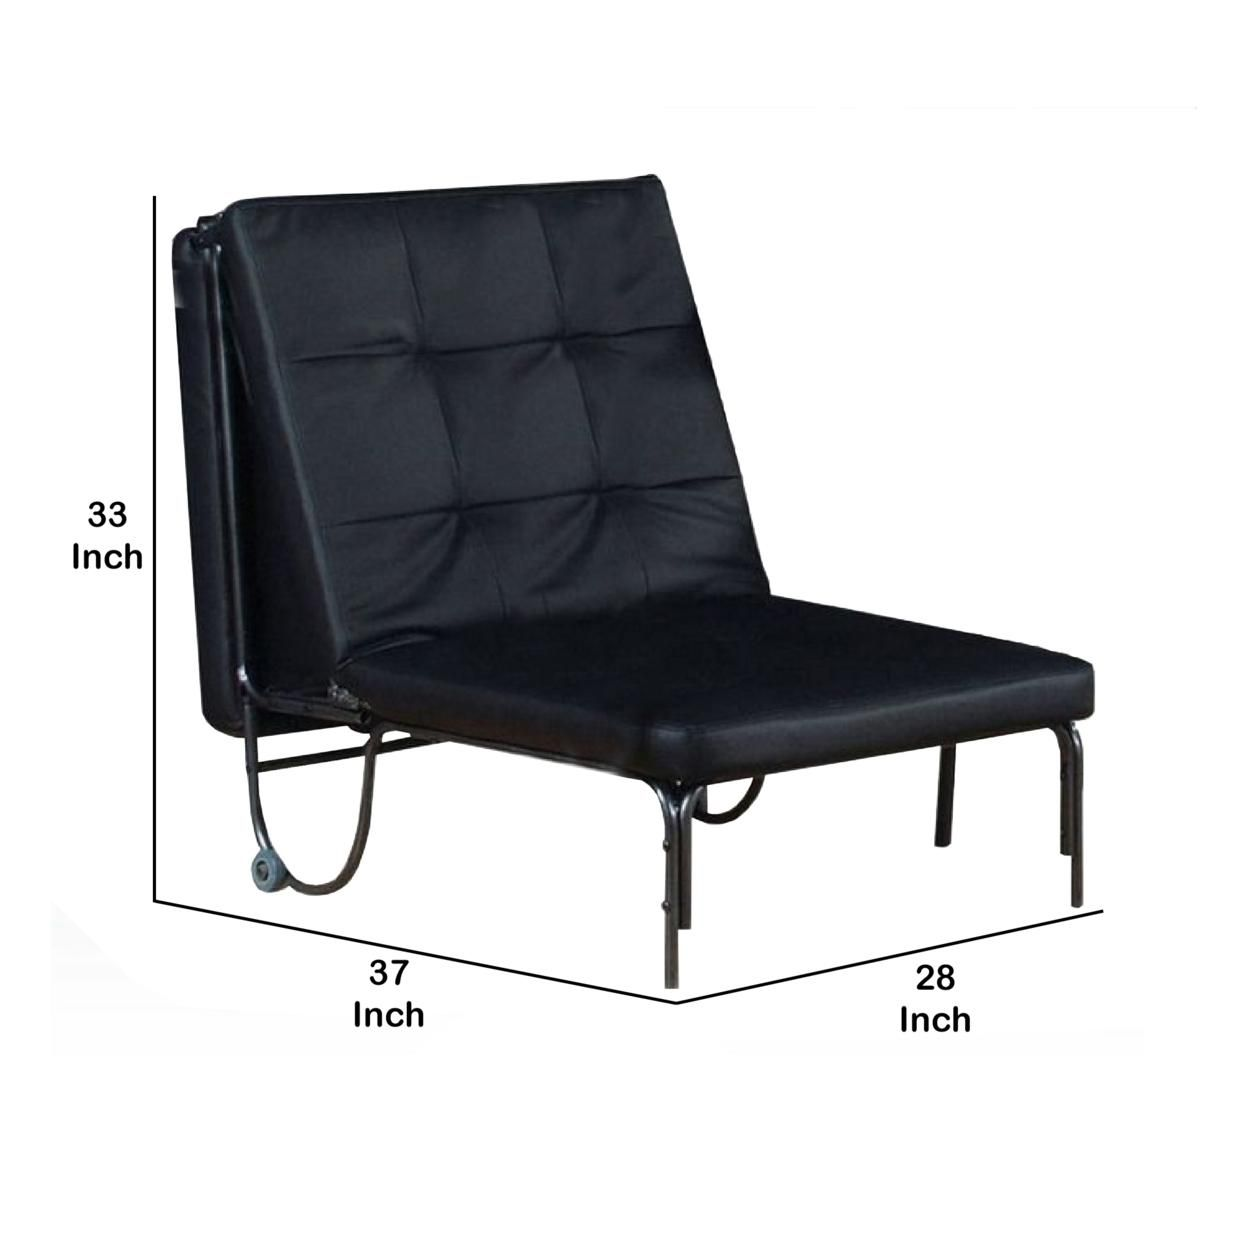 Saltoro Sherpi Adjustable Metal Futon with Faux Leather Upholstered Tufted Details and Casters, Black